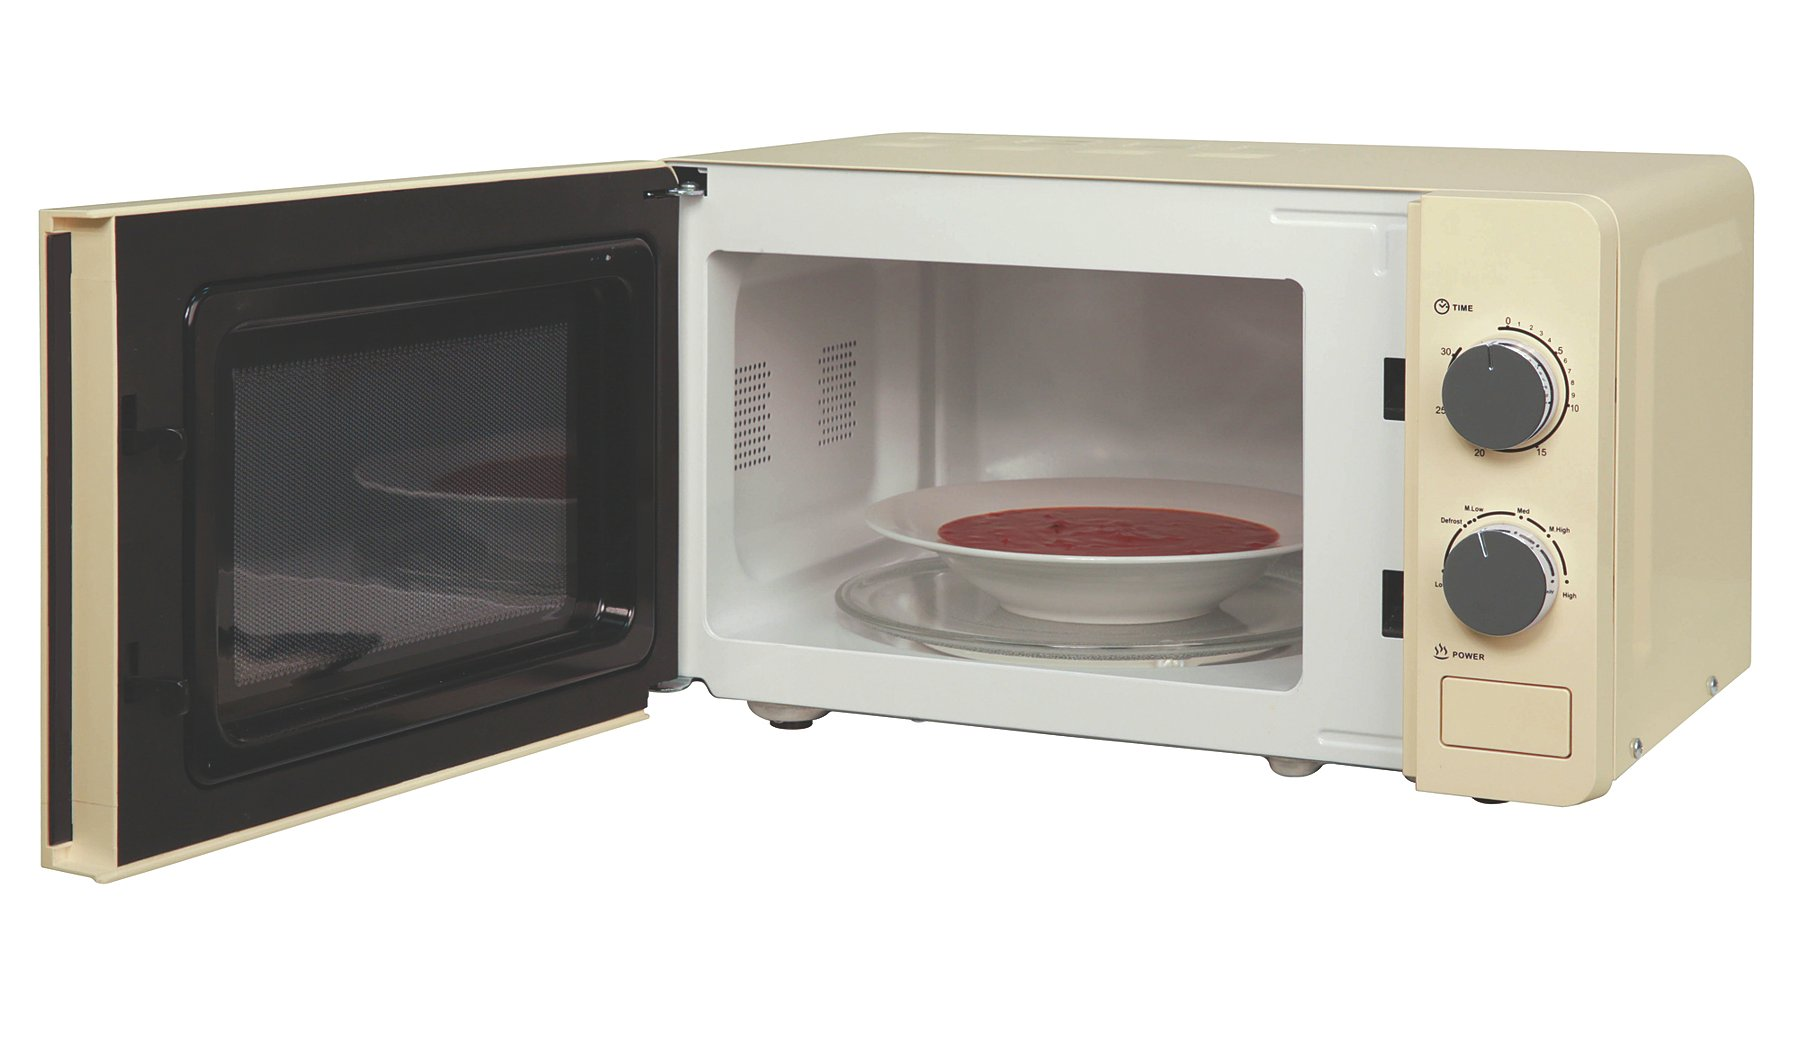 Uncategorized Asda Kitchen Liances Rus Hobbs Rhmm703b Microwave Home Garden George At